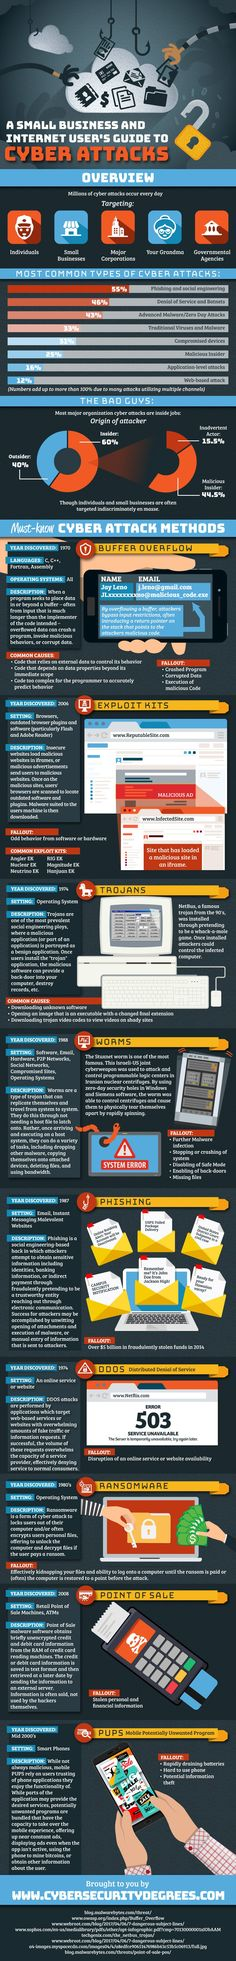 A Small Business and Internet User's Guide to Cyber Security #Infographic